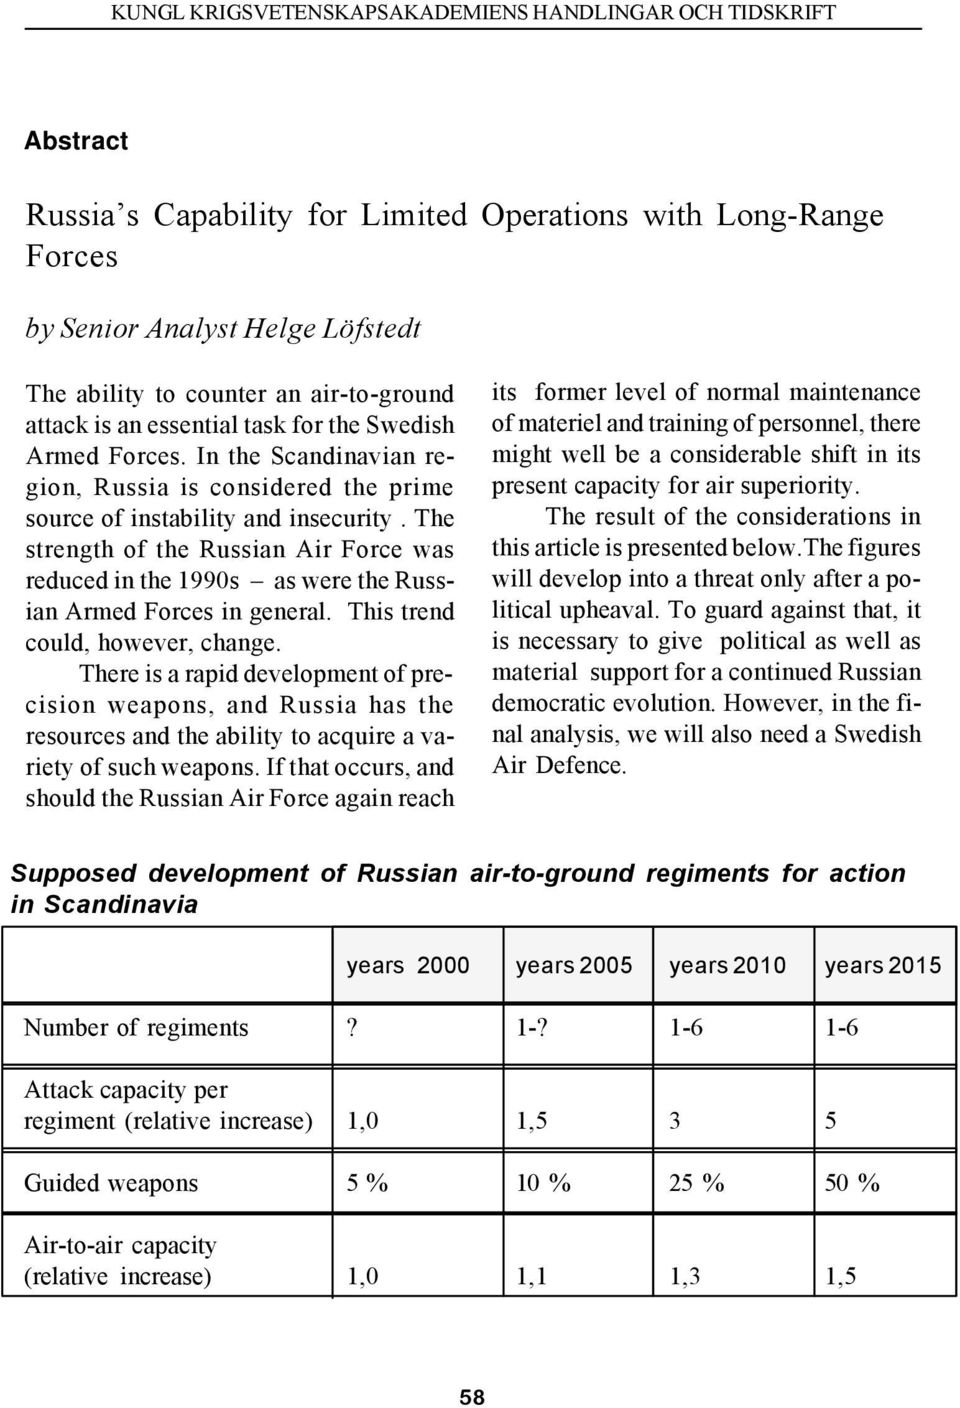 The strength of the Russian Air Force was reduced in the 1990s as were the Russian Armed Forces in general. This trend could, however, change.